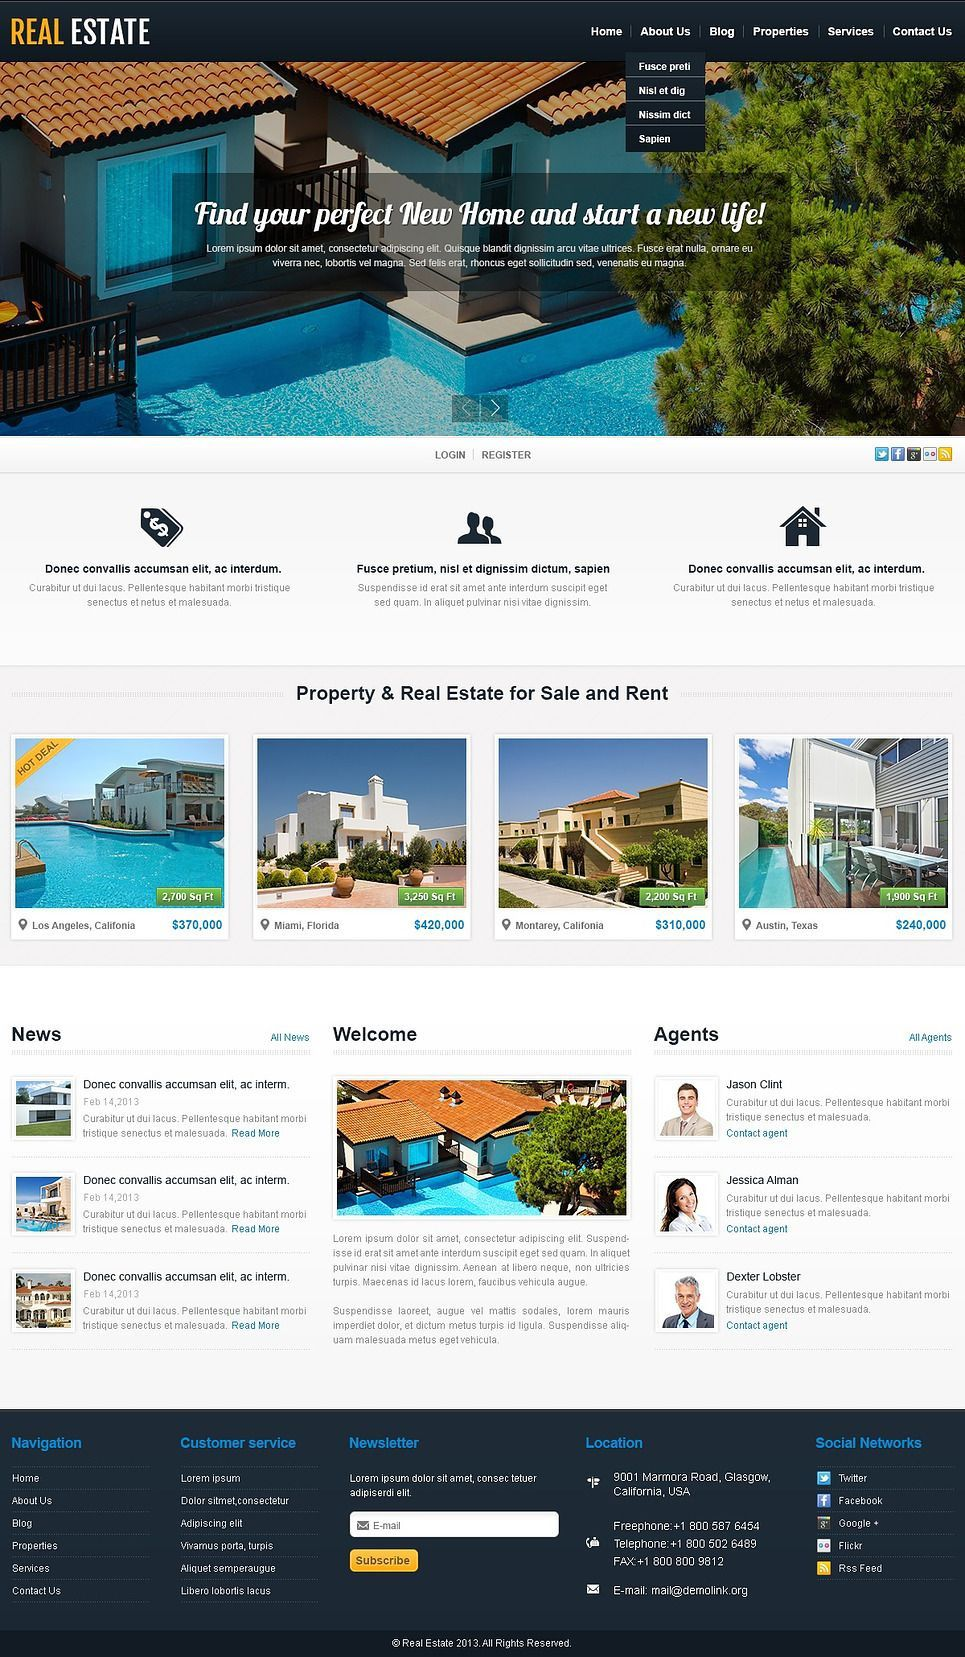 000 Exceptional Real Estate Template Wordpres High Resolution  Homepres - Theme Free Download RealtyspaceFull